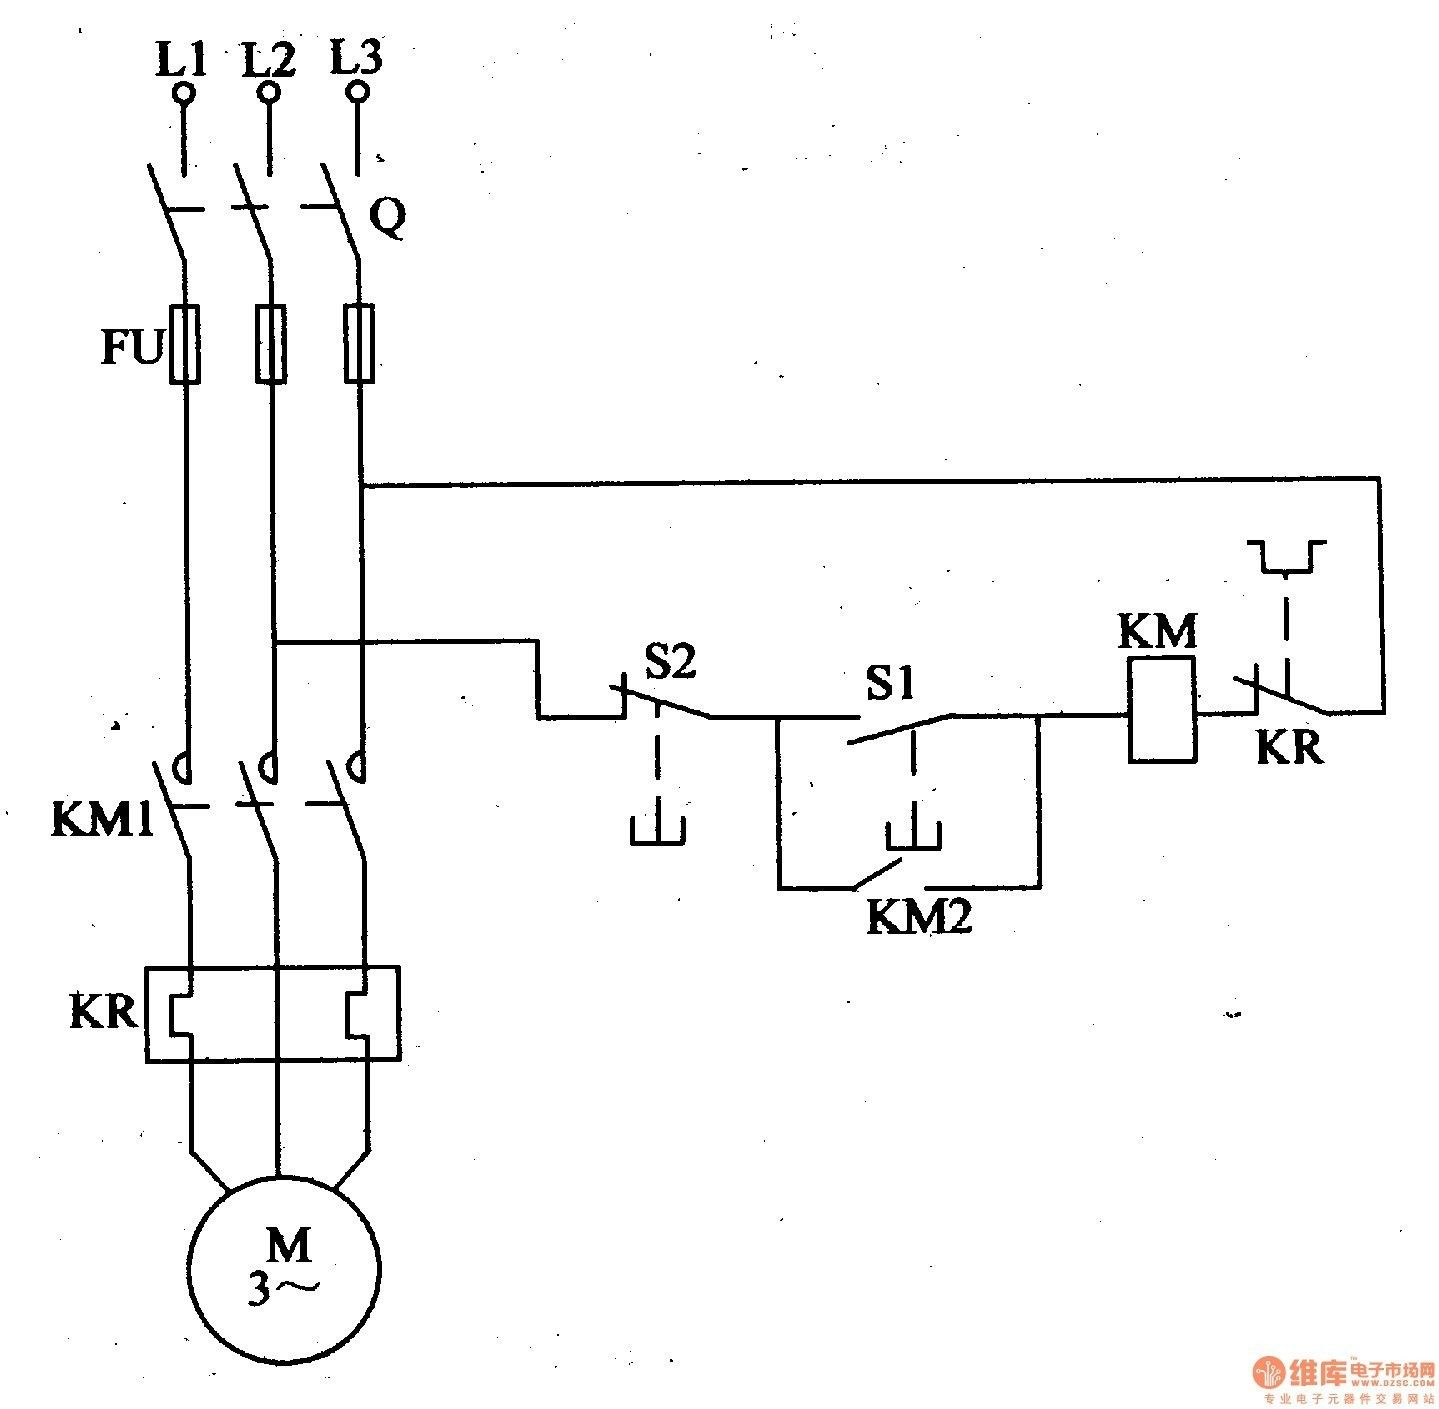 New Wiring Diagram Of A Direct Online Starter With Protective Devices Diagram Diagramsam Electrical Circuit Diagram Circuit Diagram Electronic Circuit Design